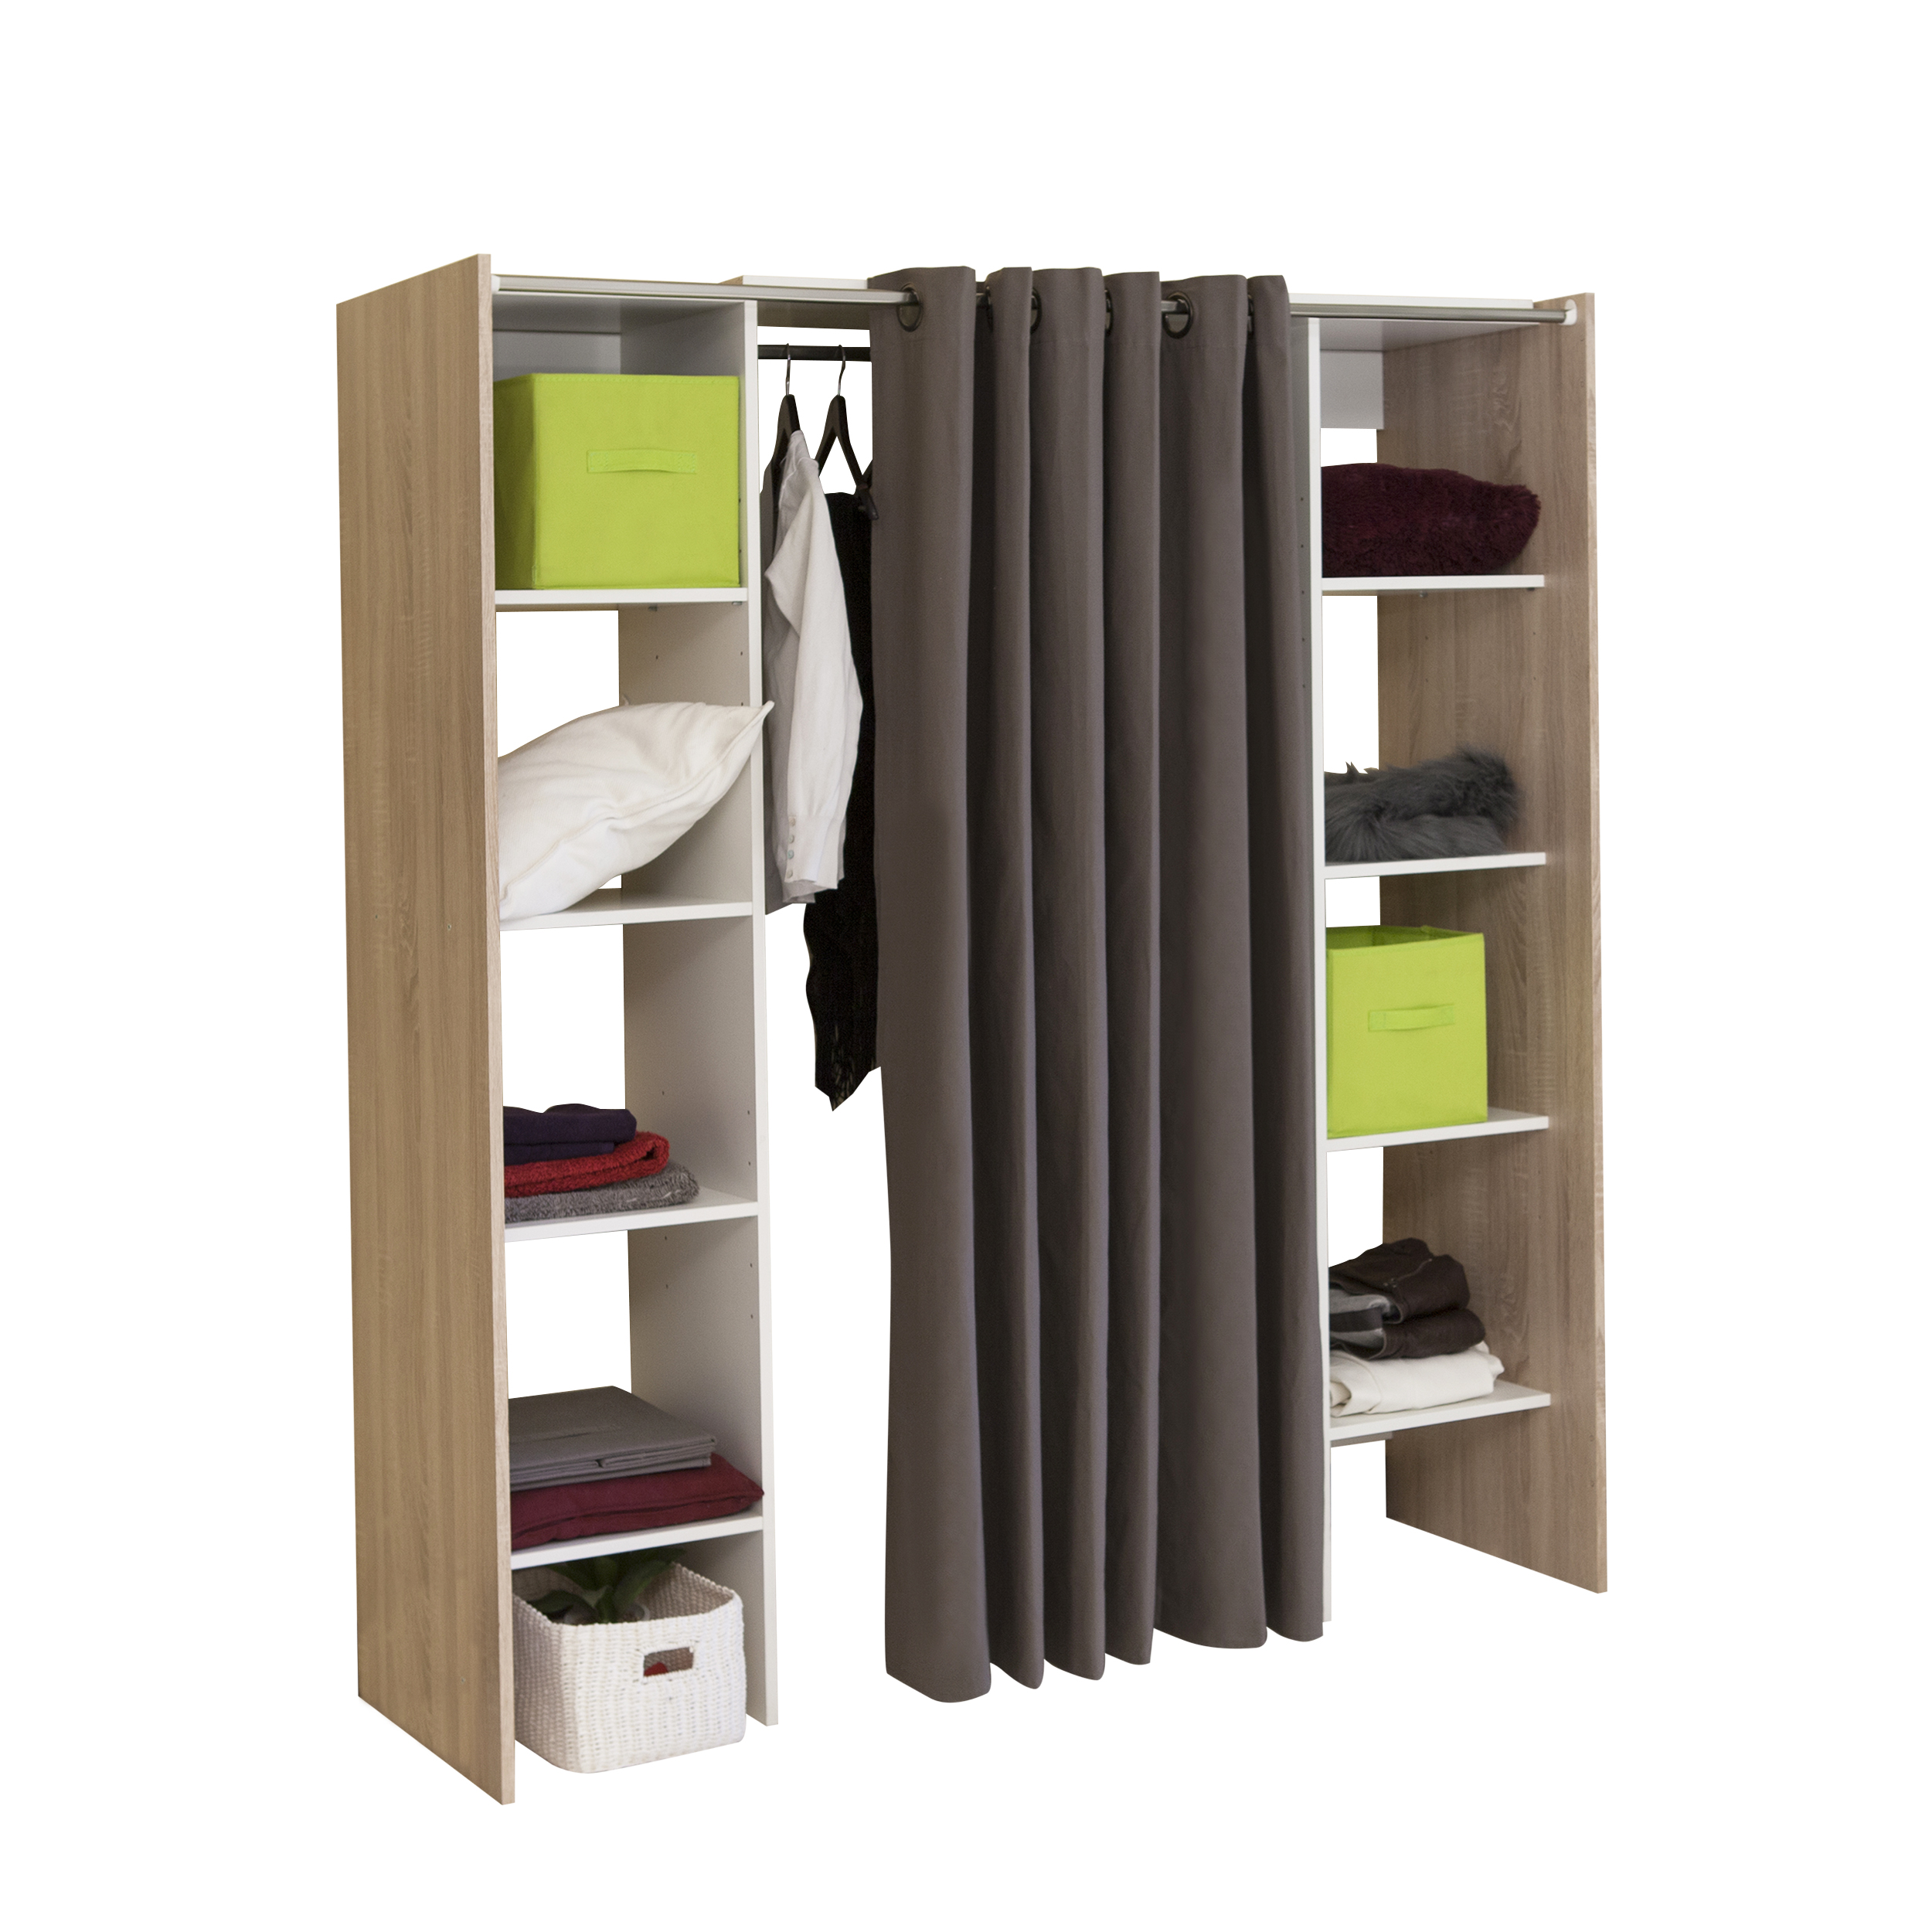 dressing extensible dressing extensible 4 niches 1. Black Bedroom Furniture Sets. Home Design Ideas